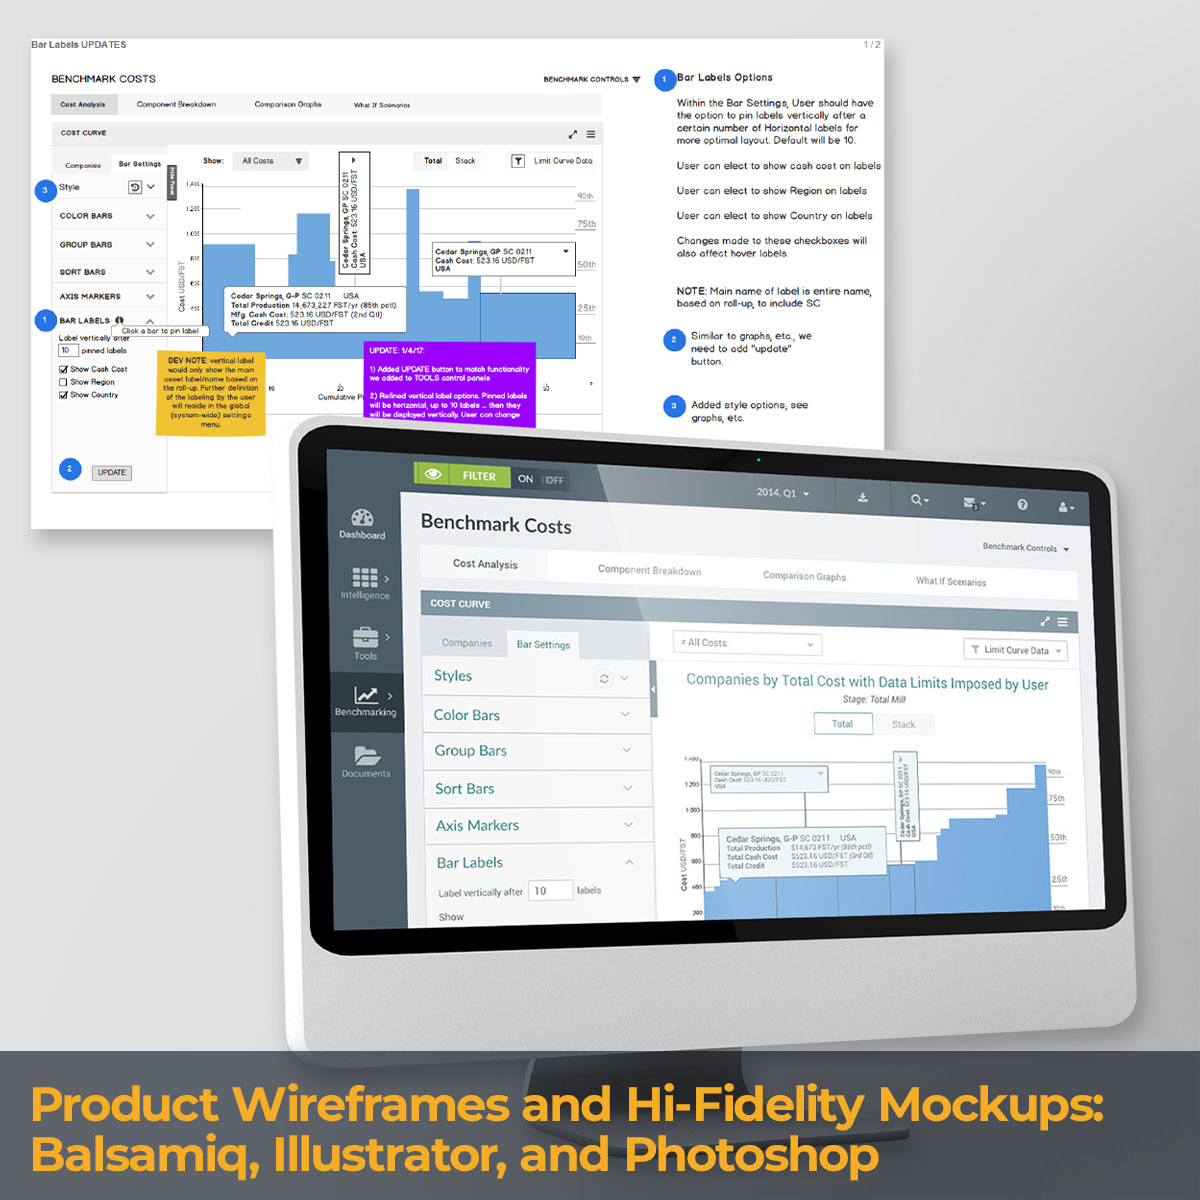 Product Wireframes and Hi-Fidelity Mockups